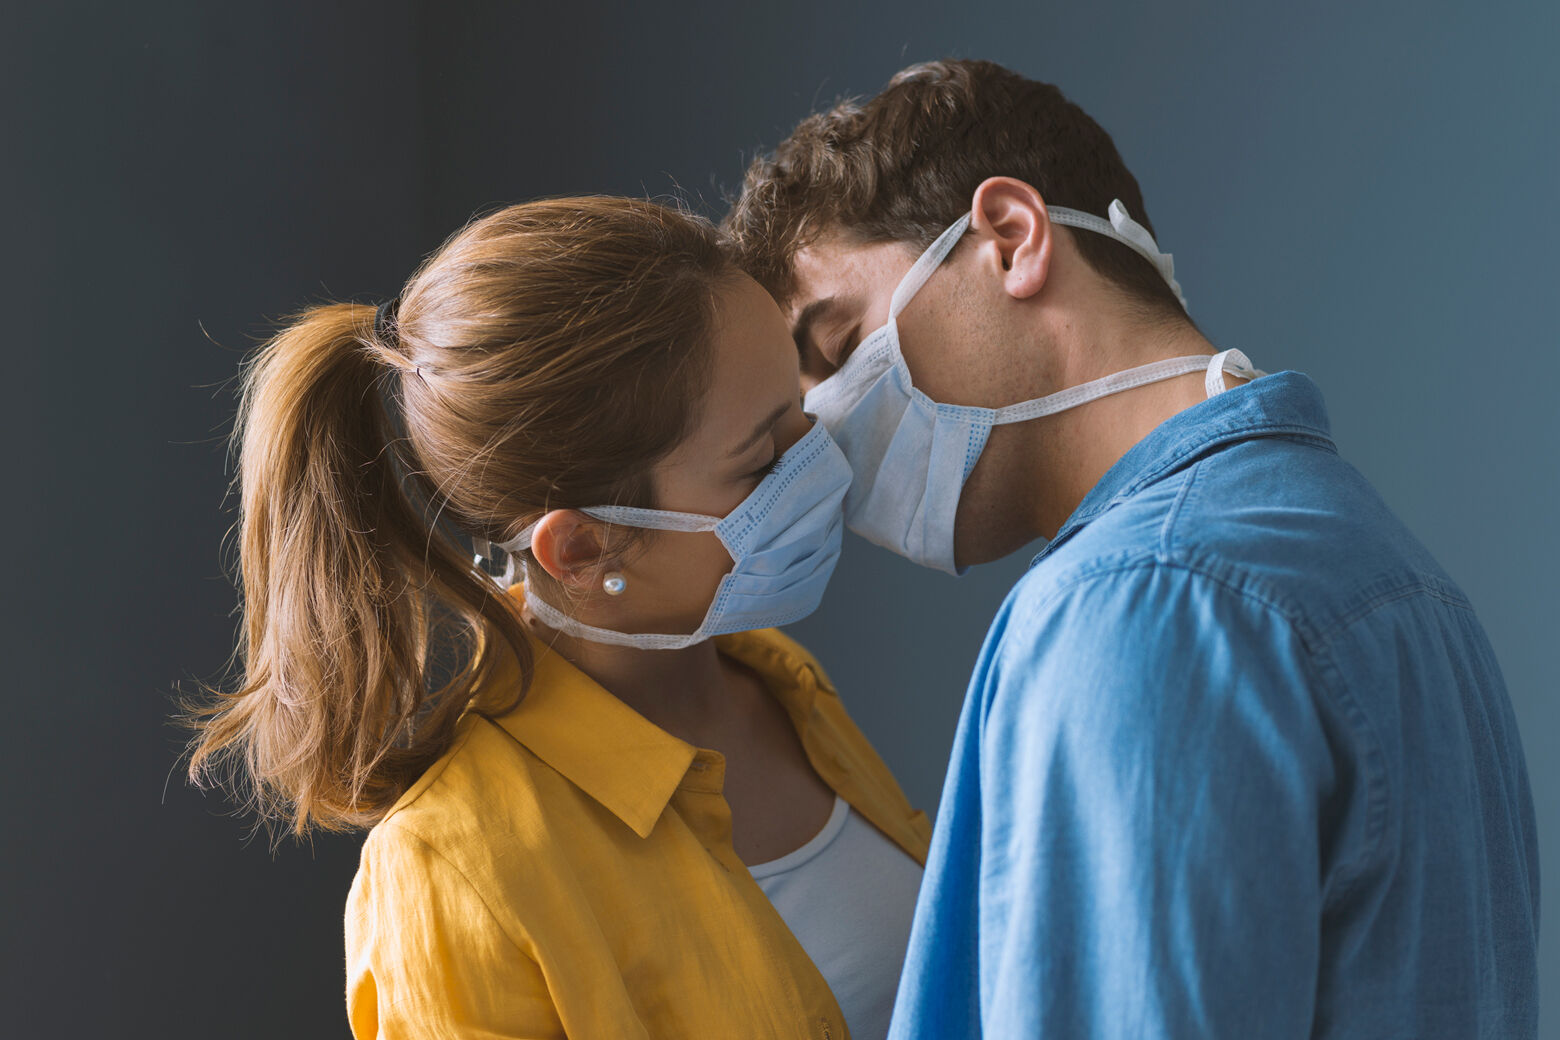 Wear a mask while having sex and avoid kissing new people, Canada's top  doctor advises | WTOP